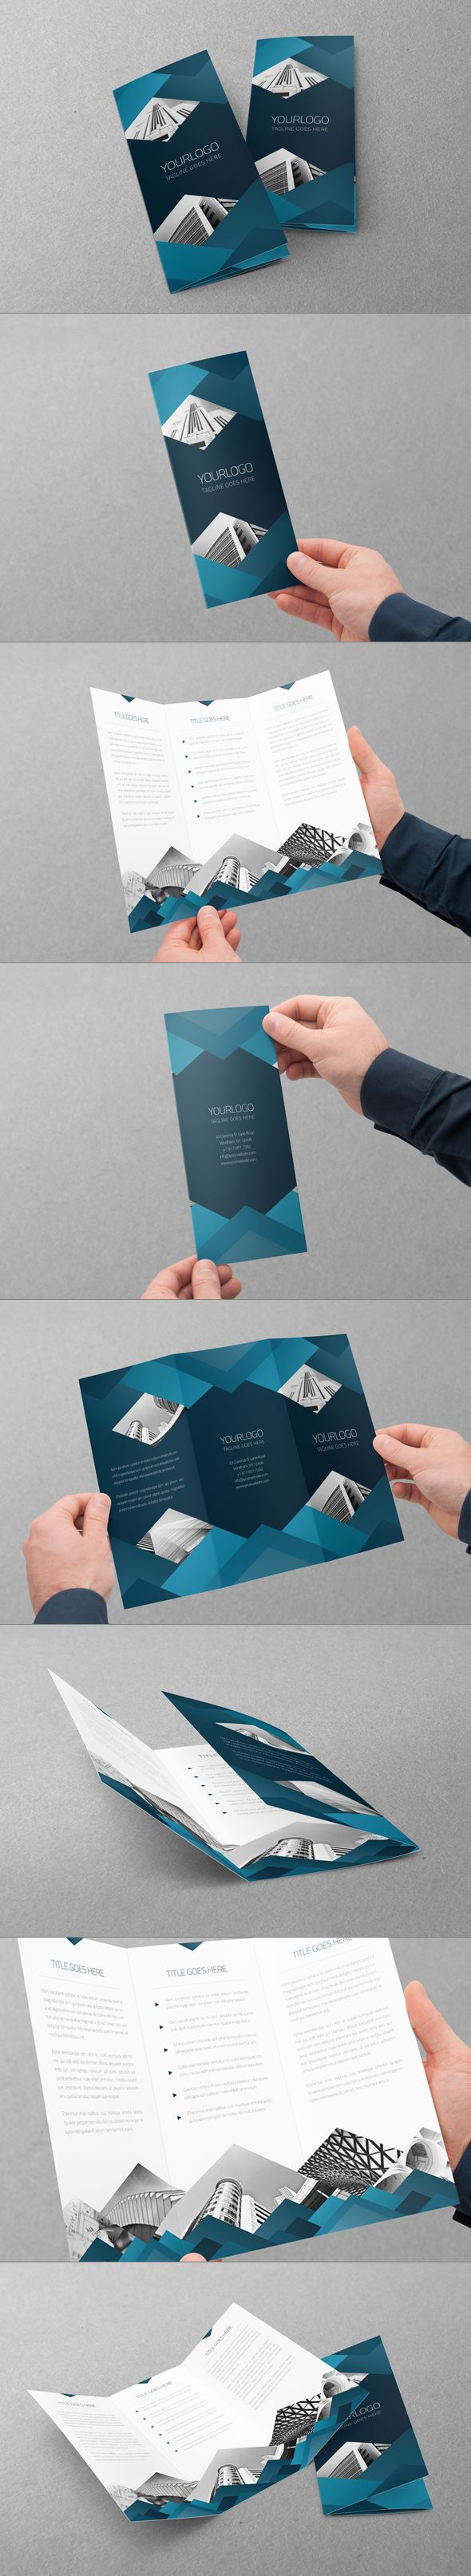 Blue Architecture Trifold by Abra Design, via Behance